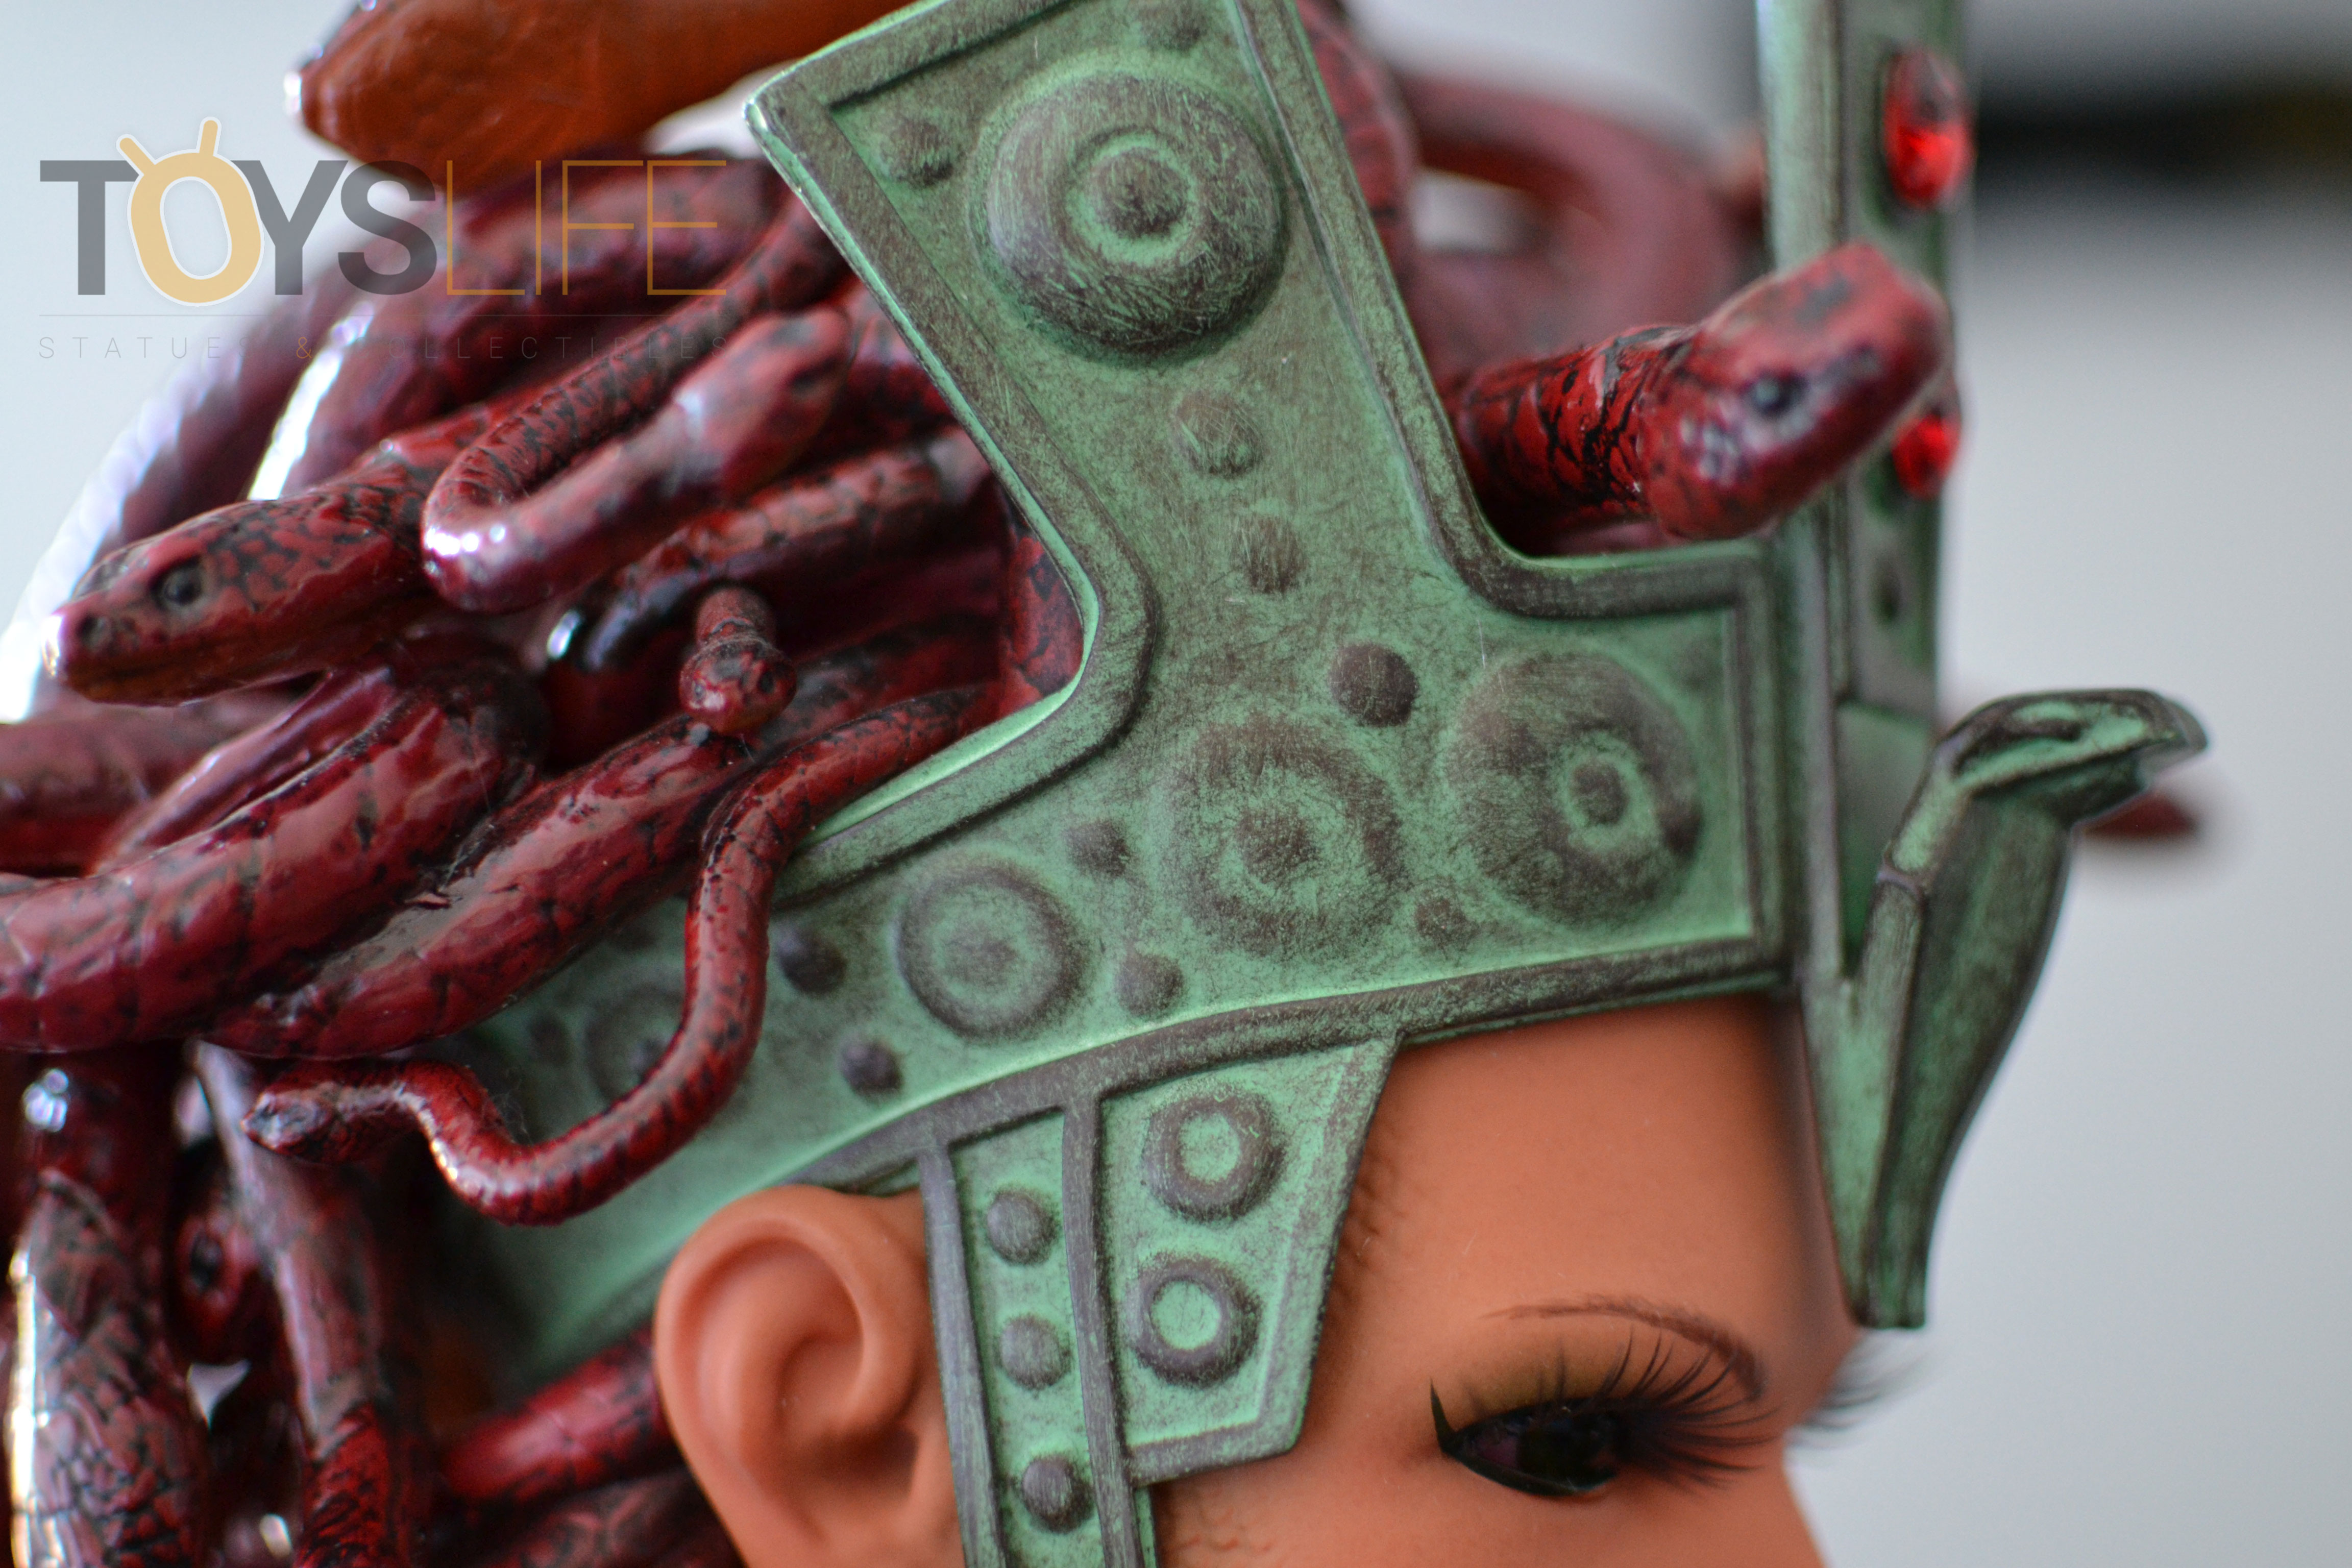 hmo-medusa-bust-toyslife-review-22